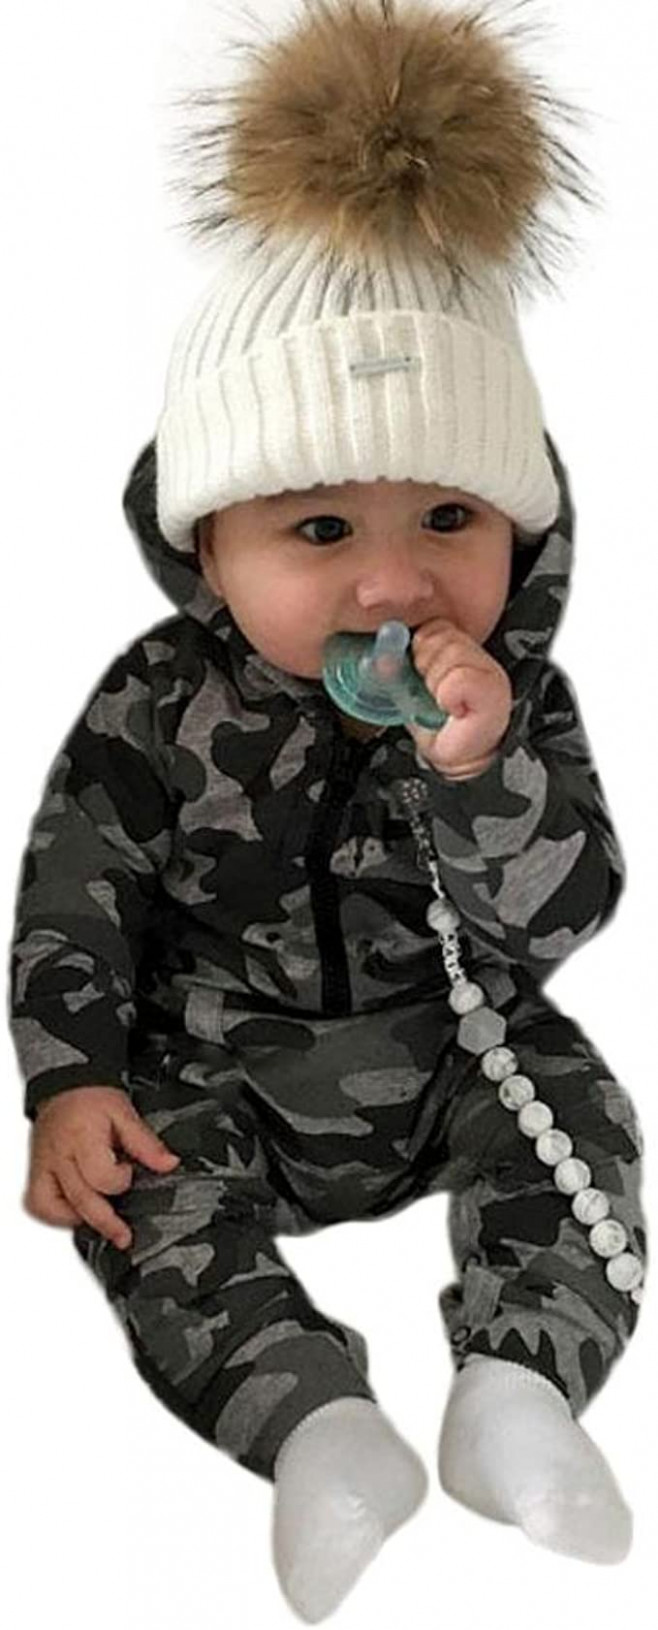 baby jungen mädchen camouflage print kapuzen overall overall kleidung outfits xinantime baby junge kleidung